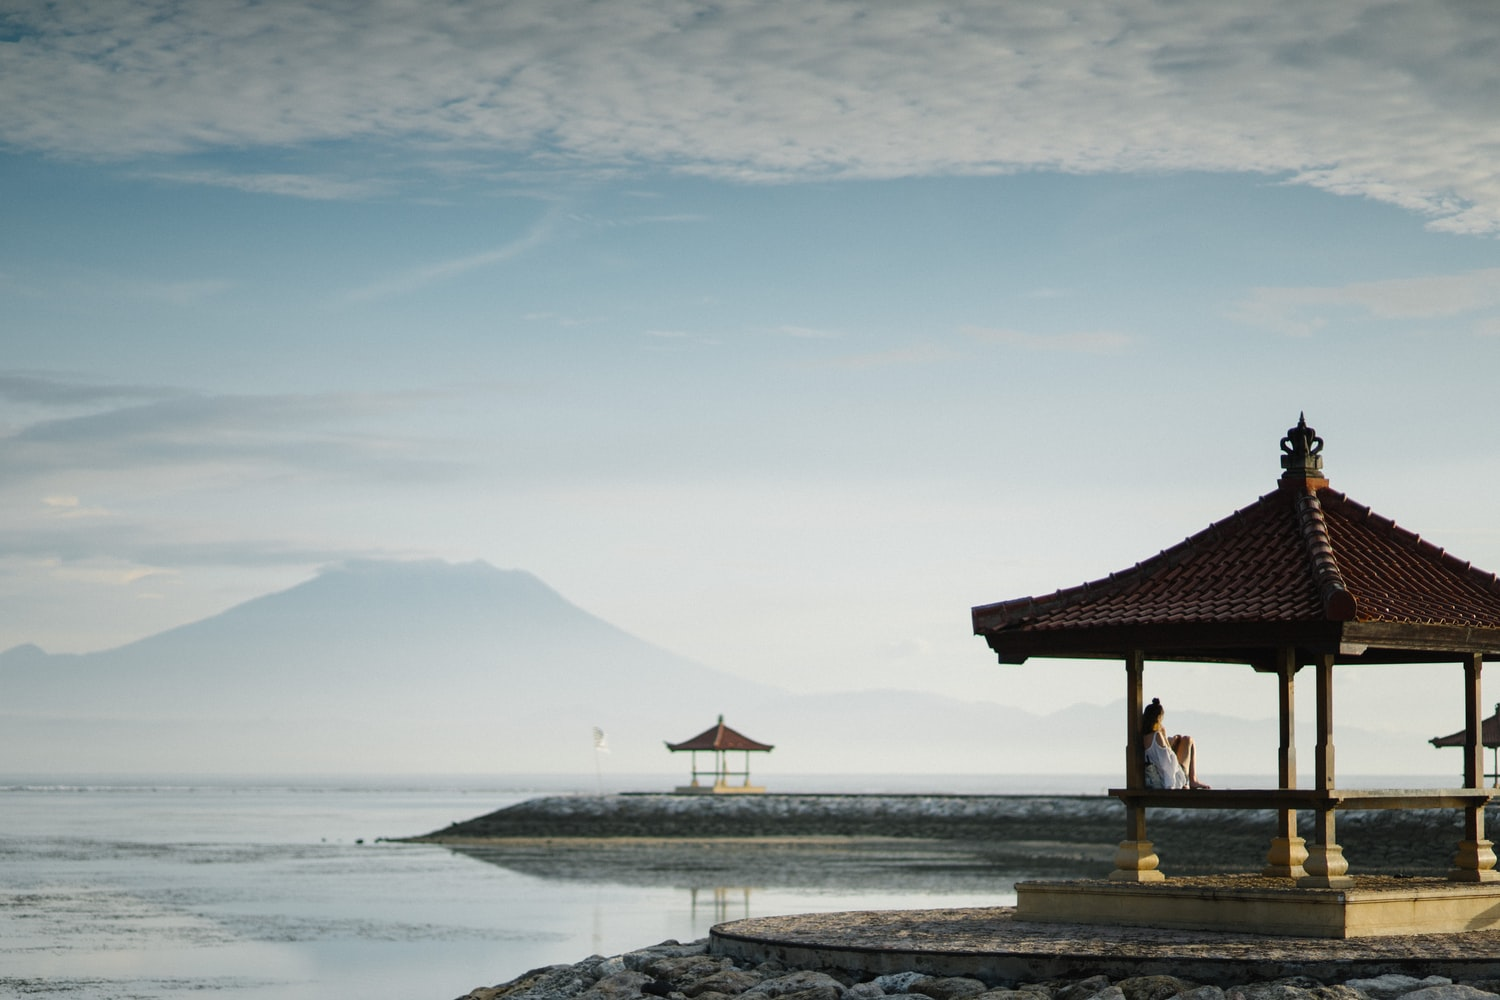 Weather in Bali in December